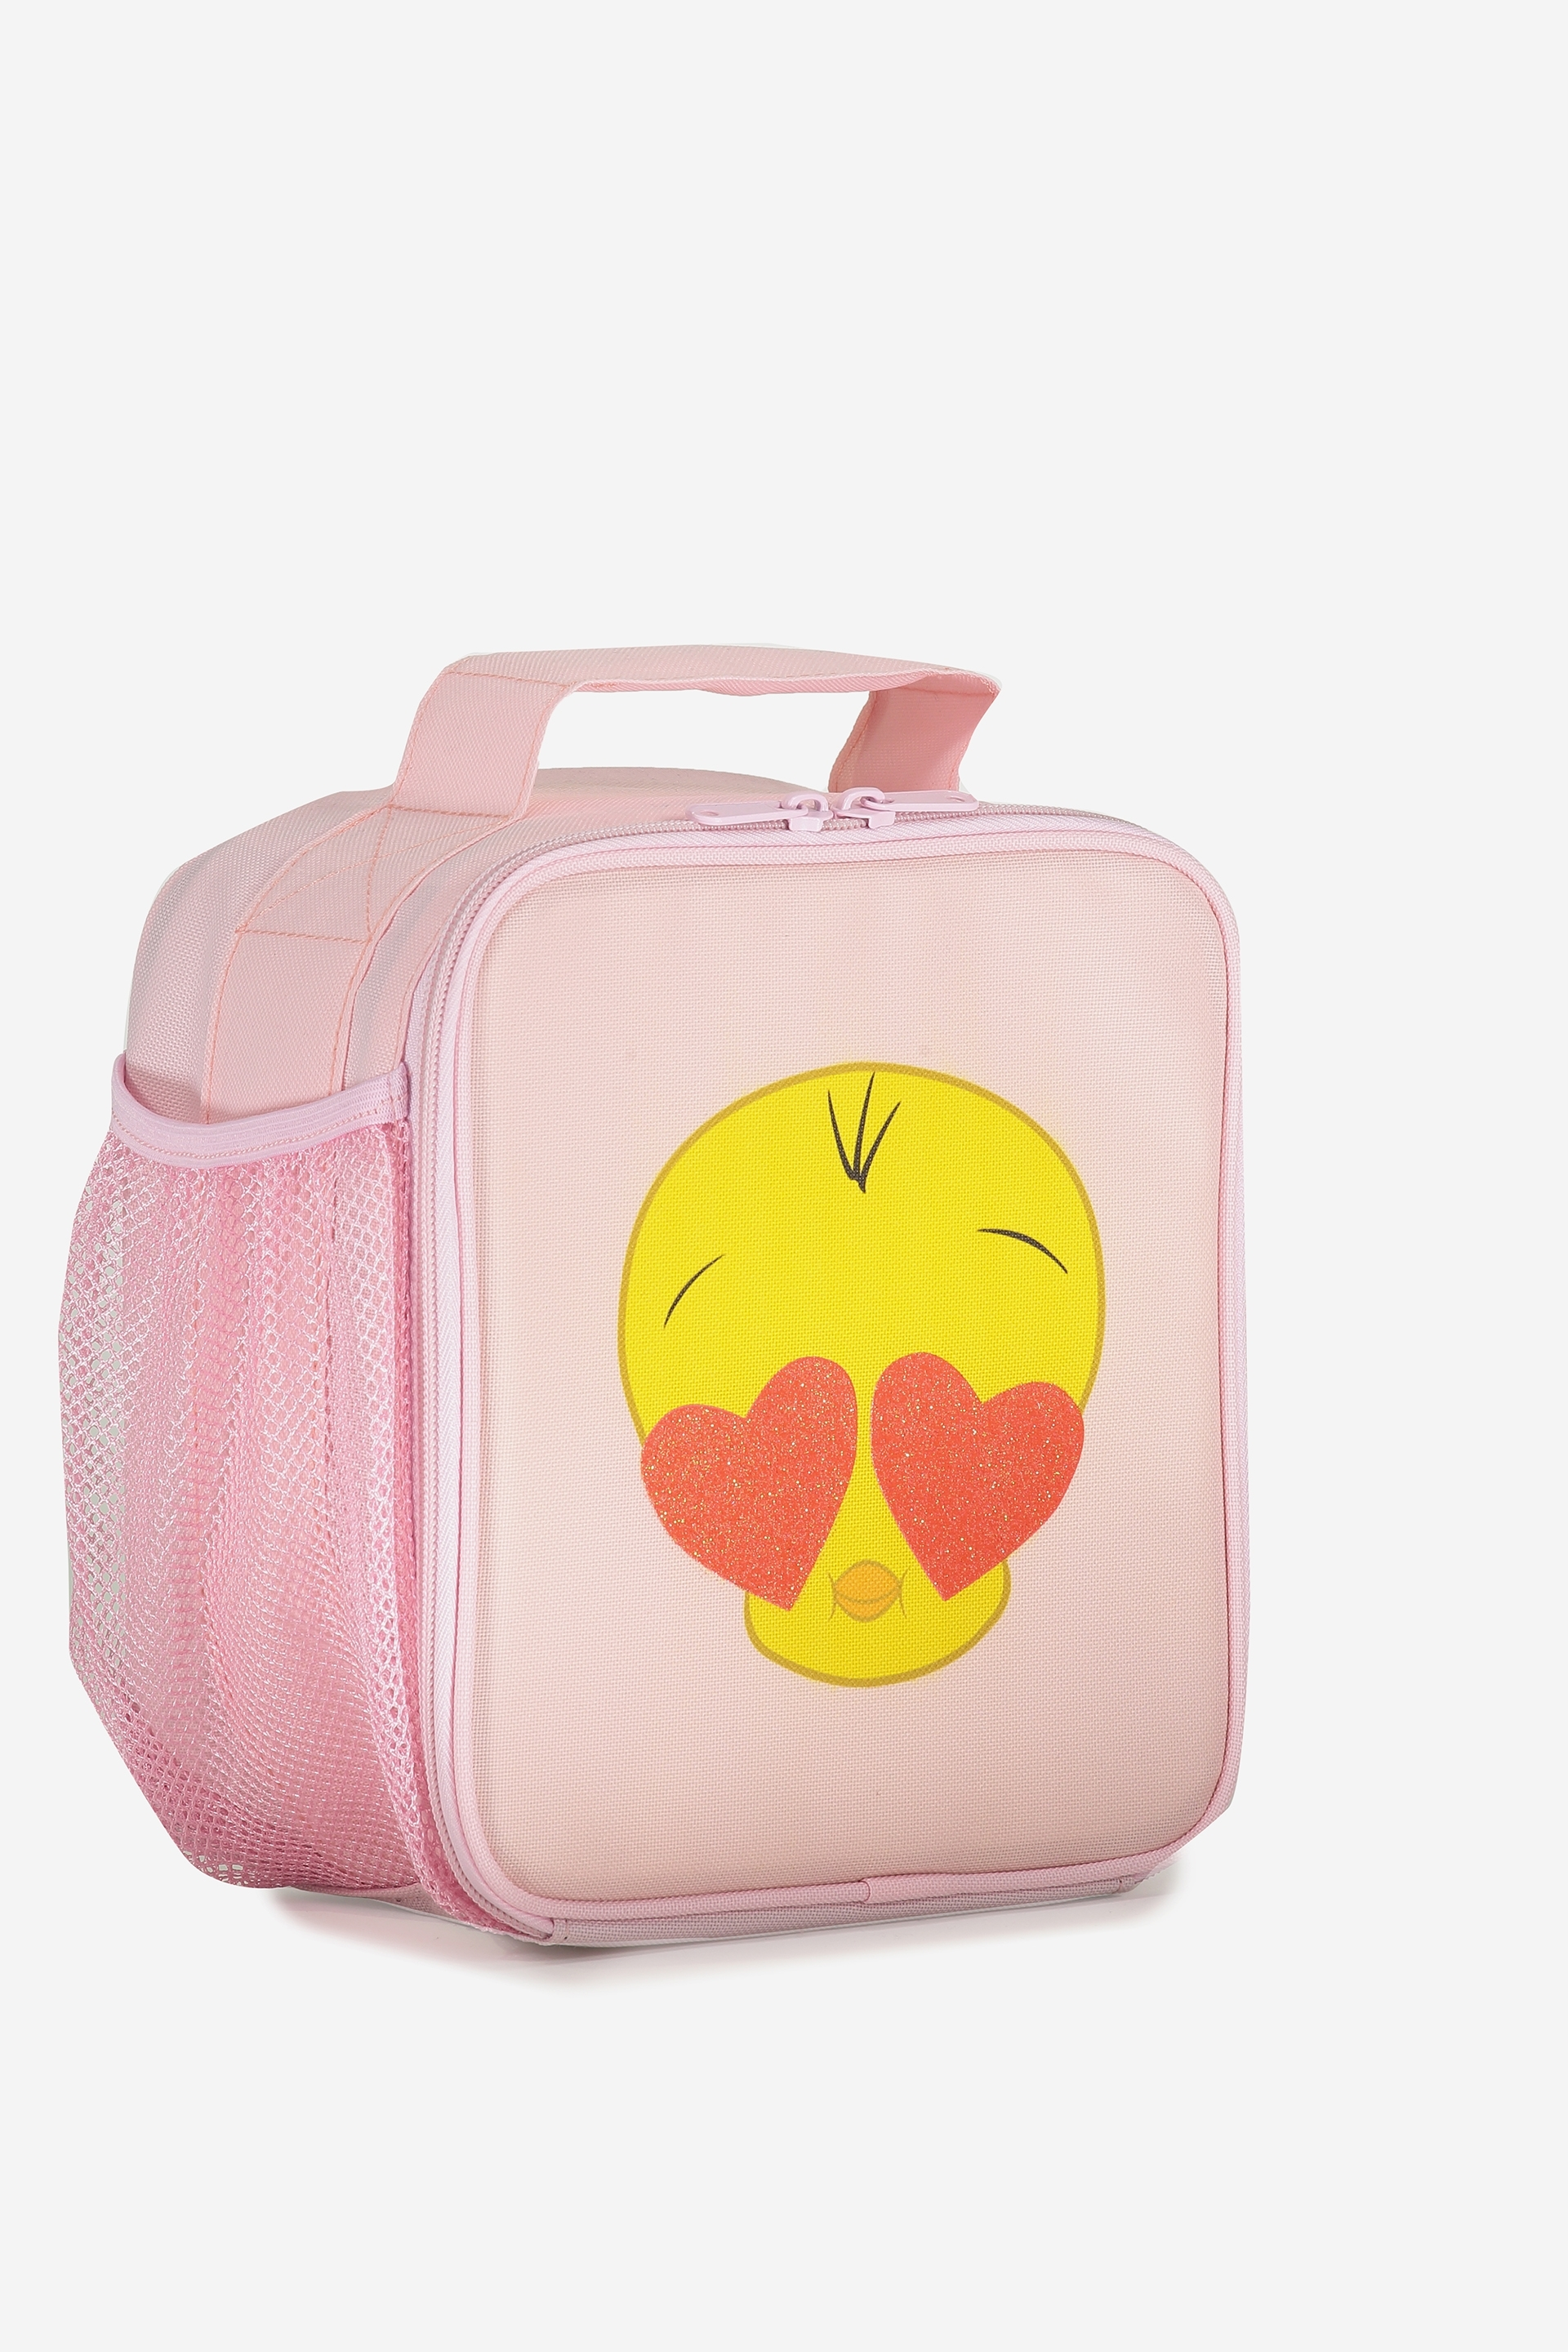 Cotton On Kids  License Lunch Bag  Pink tweety